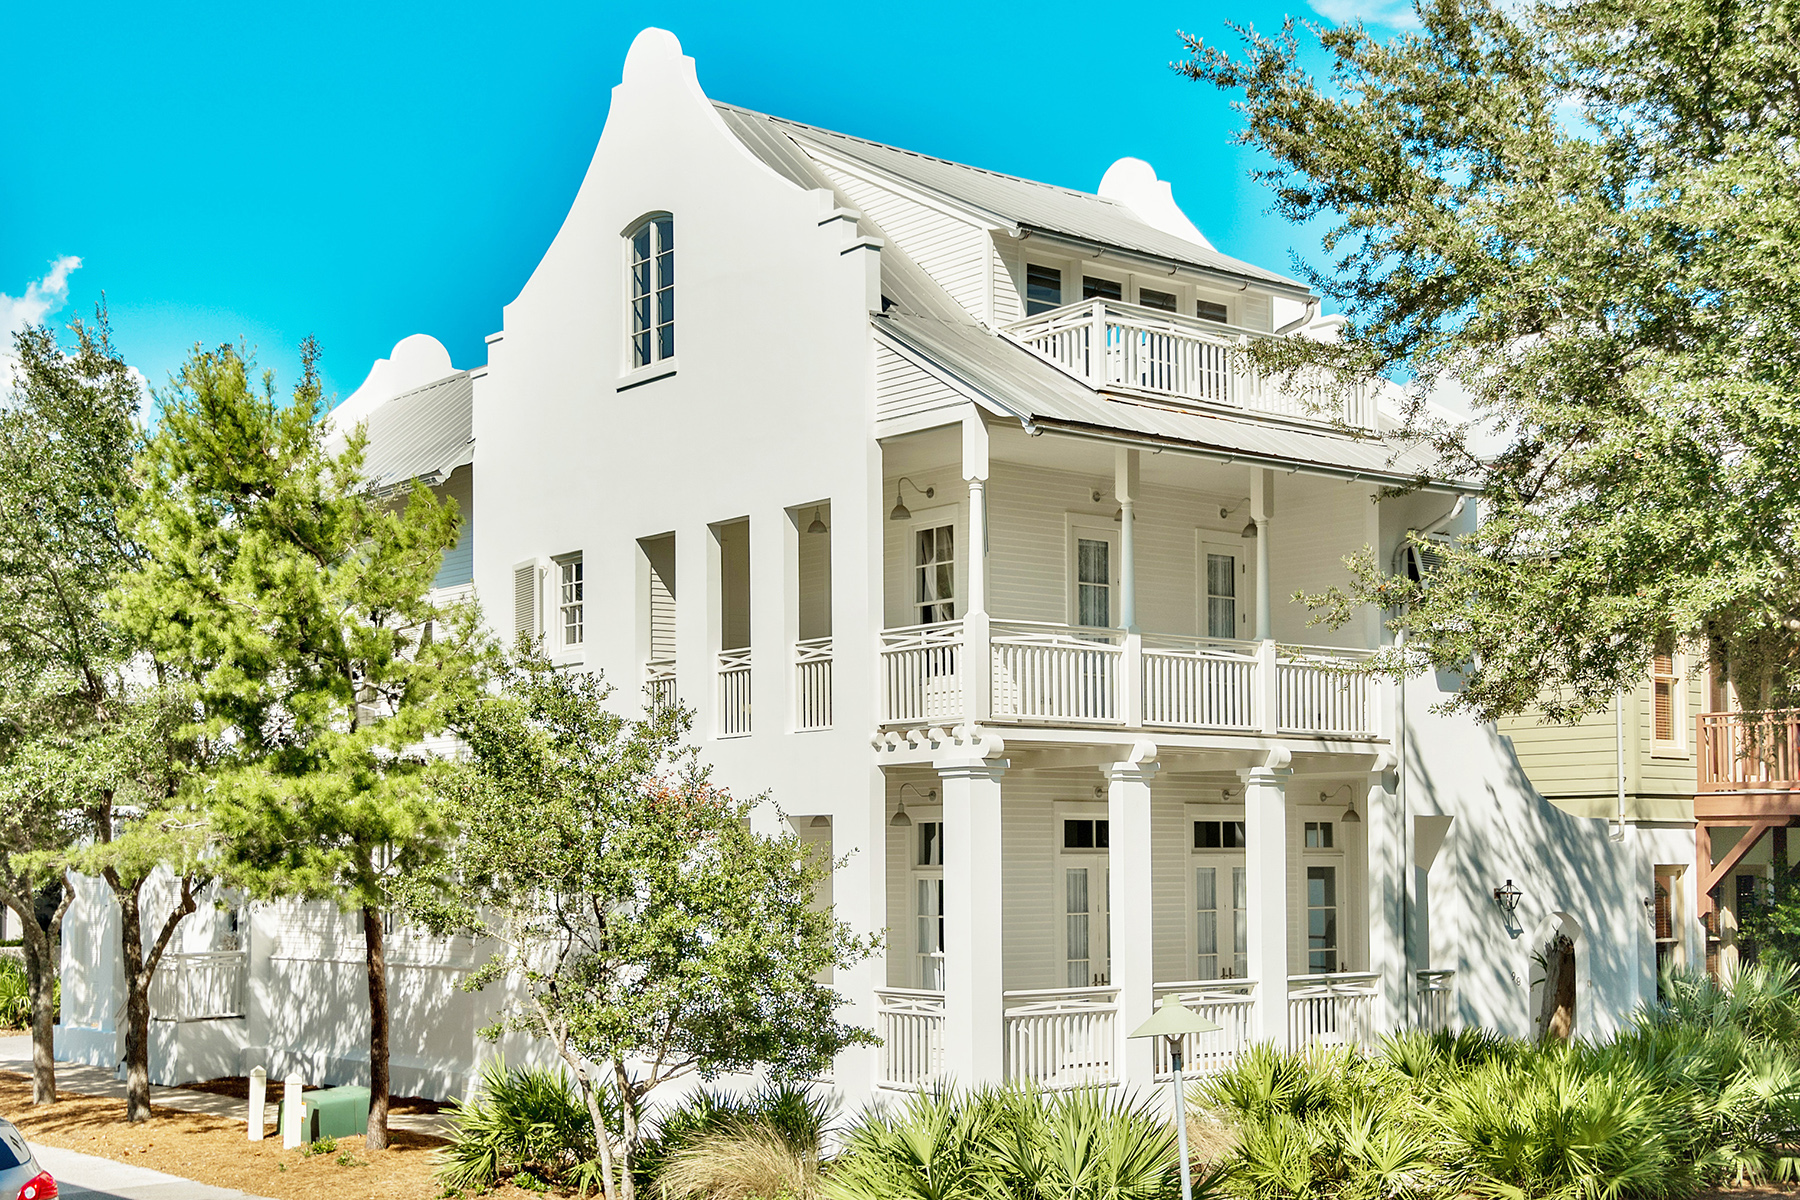 一戸建て のために 売買 アット CLASSIC COURTYARD HOME WITH POOL IDEALLY LOCATED IN ROSEMARY BEACH 98 W Long Green Road Rosemary Beach, Rosemary Beach, フロリダ, 32461 アメリカ合衆国